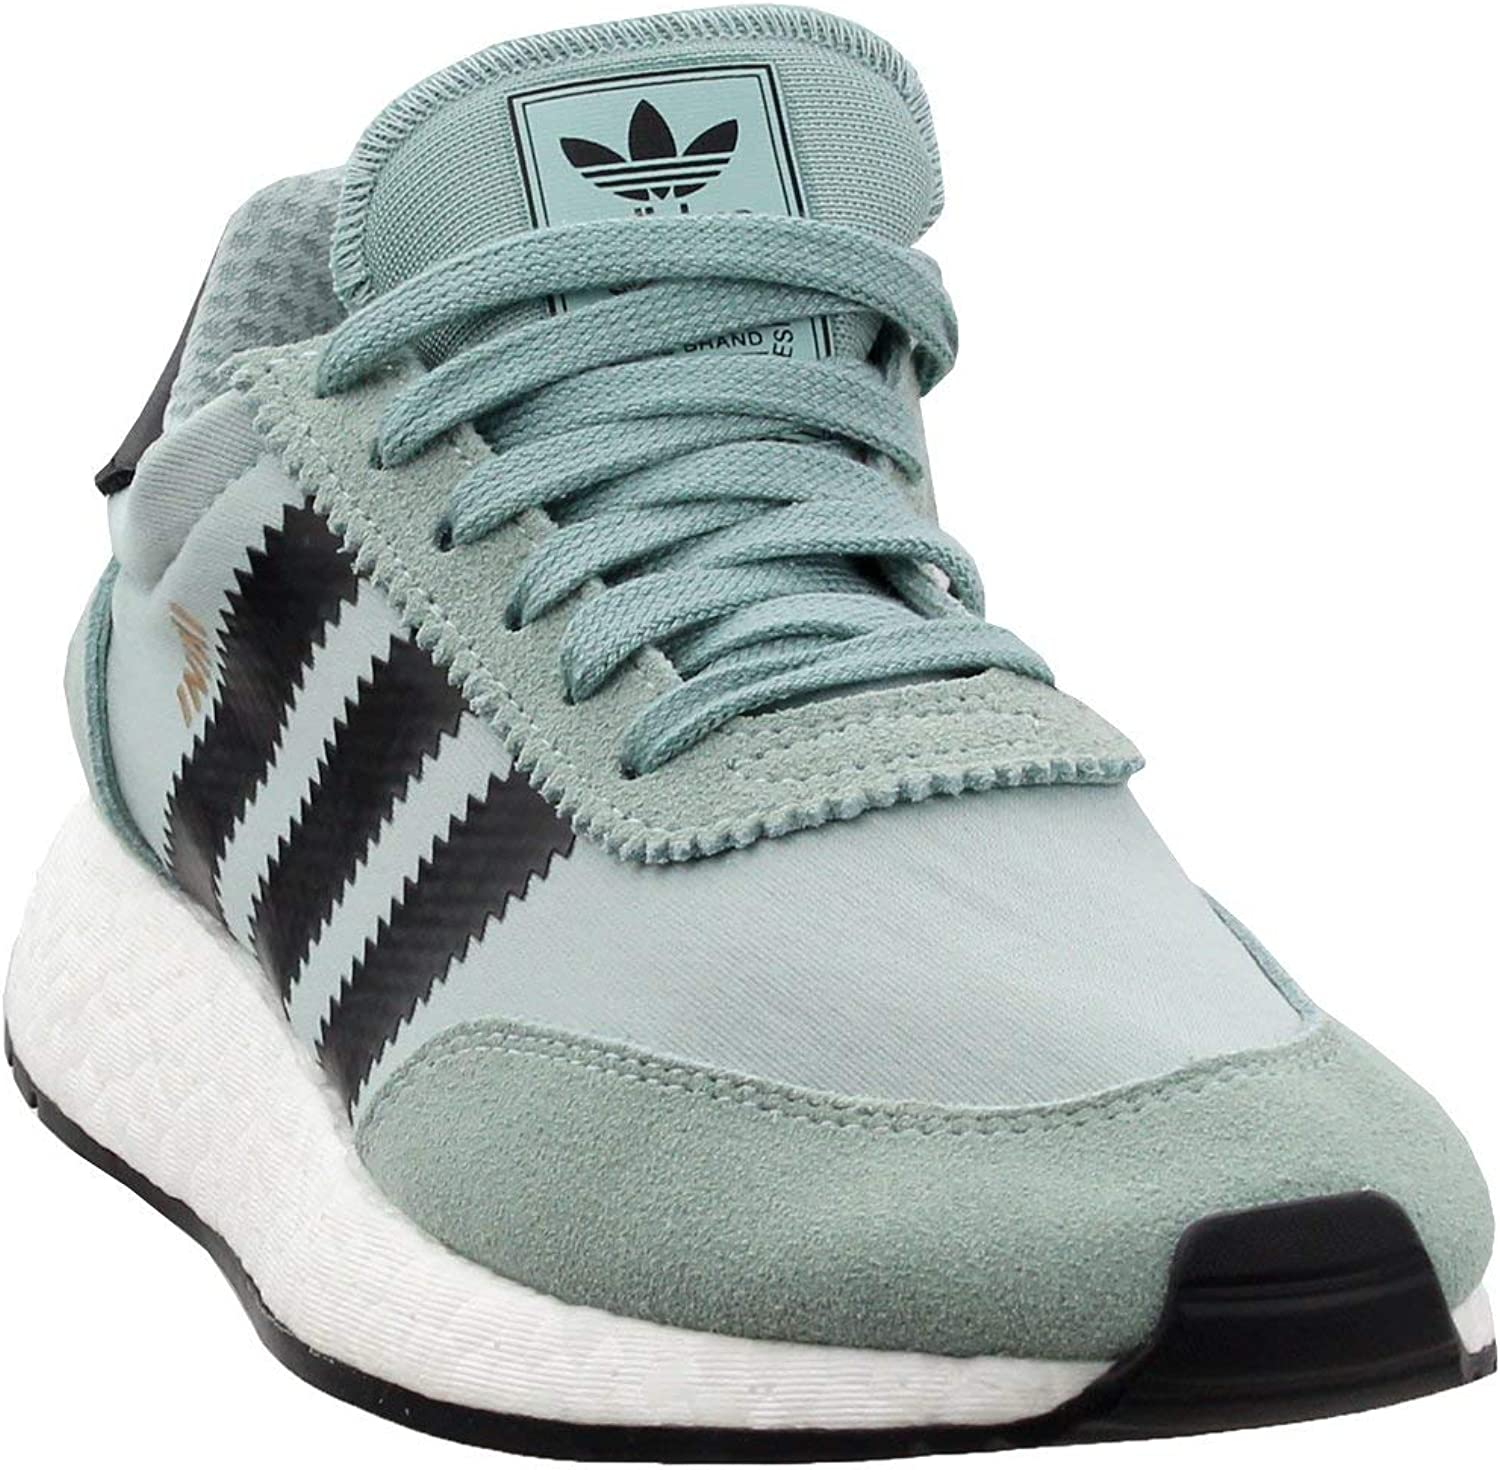 Adidas Iniki Runner Womens in Tactile Green Core Black, 9.5